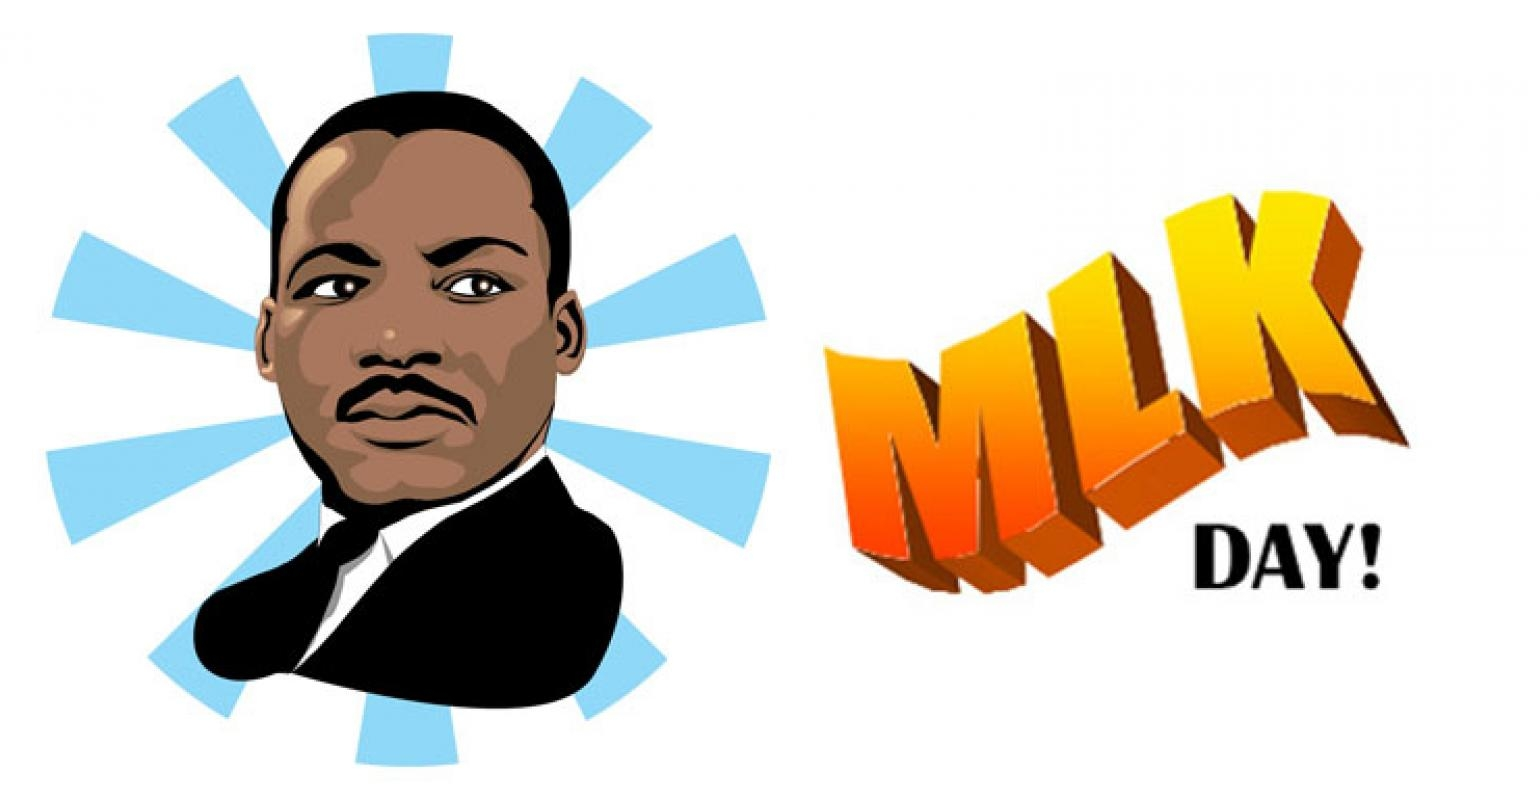 martin luther king jr clipart at getdrawings com free for personal rh getdrawings com martin luther king jr quotes clipart martin luther king jr clipart black and white